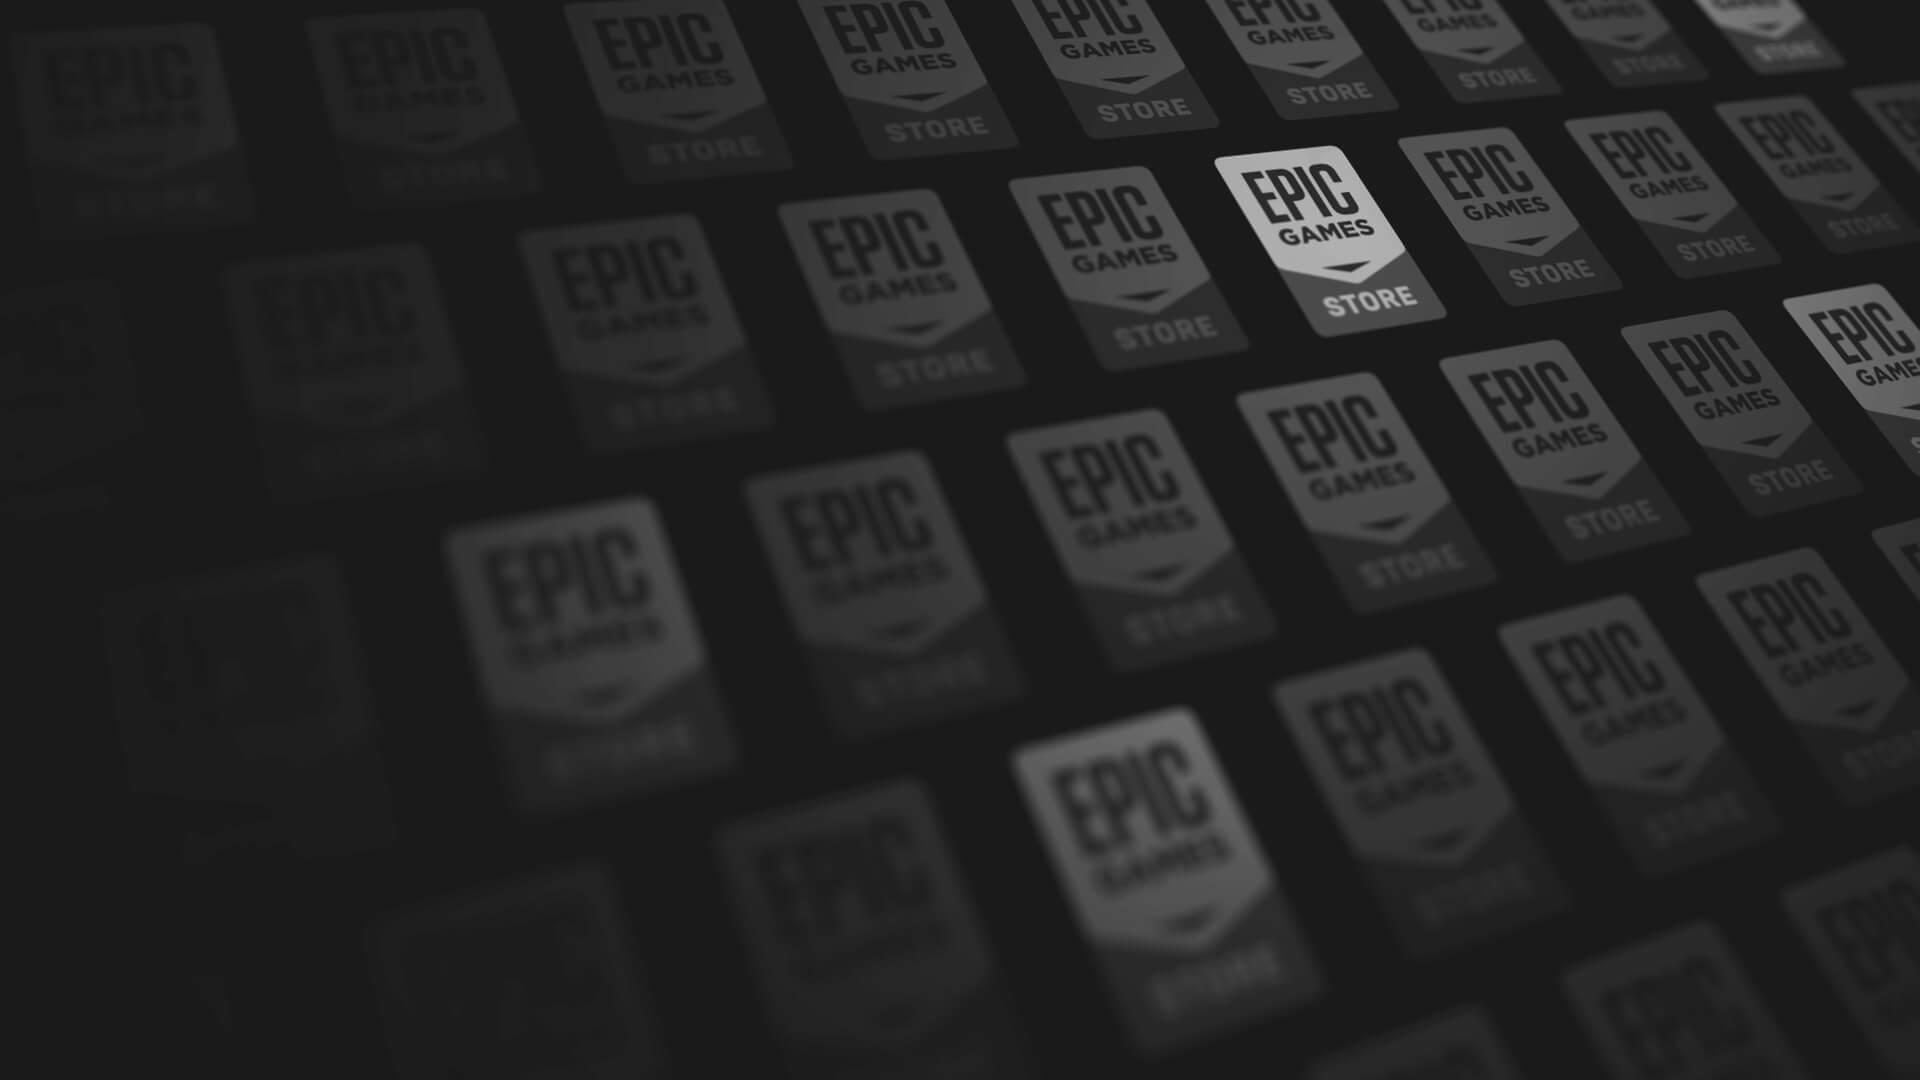 The Epic Games Store's 'Spring Showcase' event will bring new game reveals, sales, and more